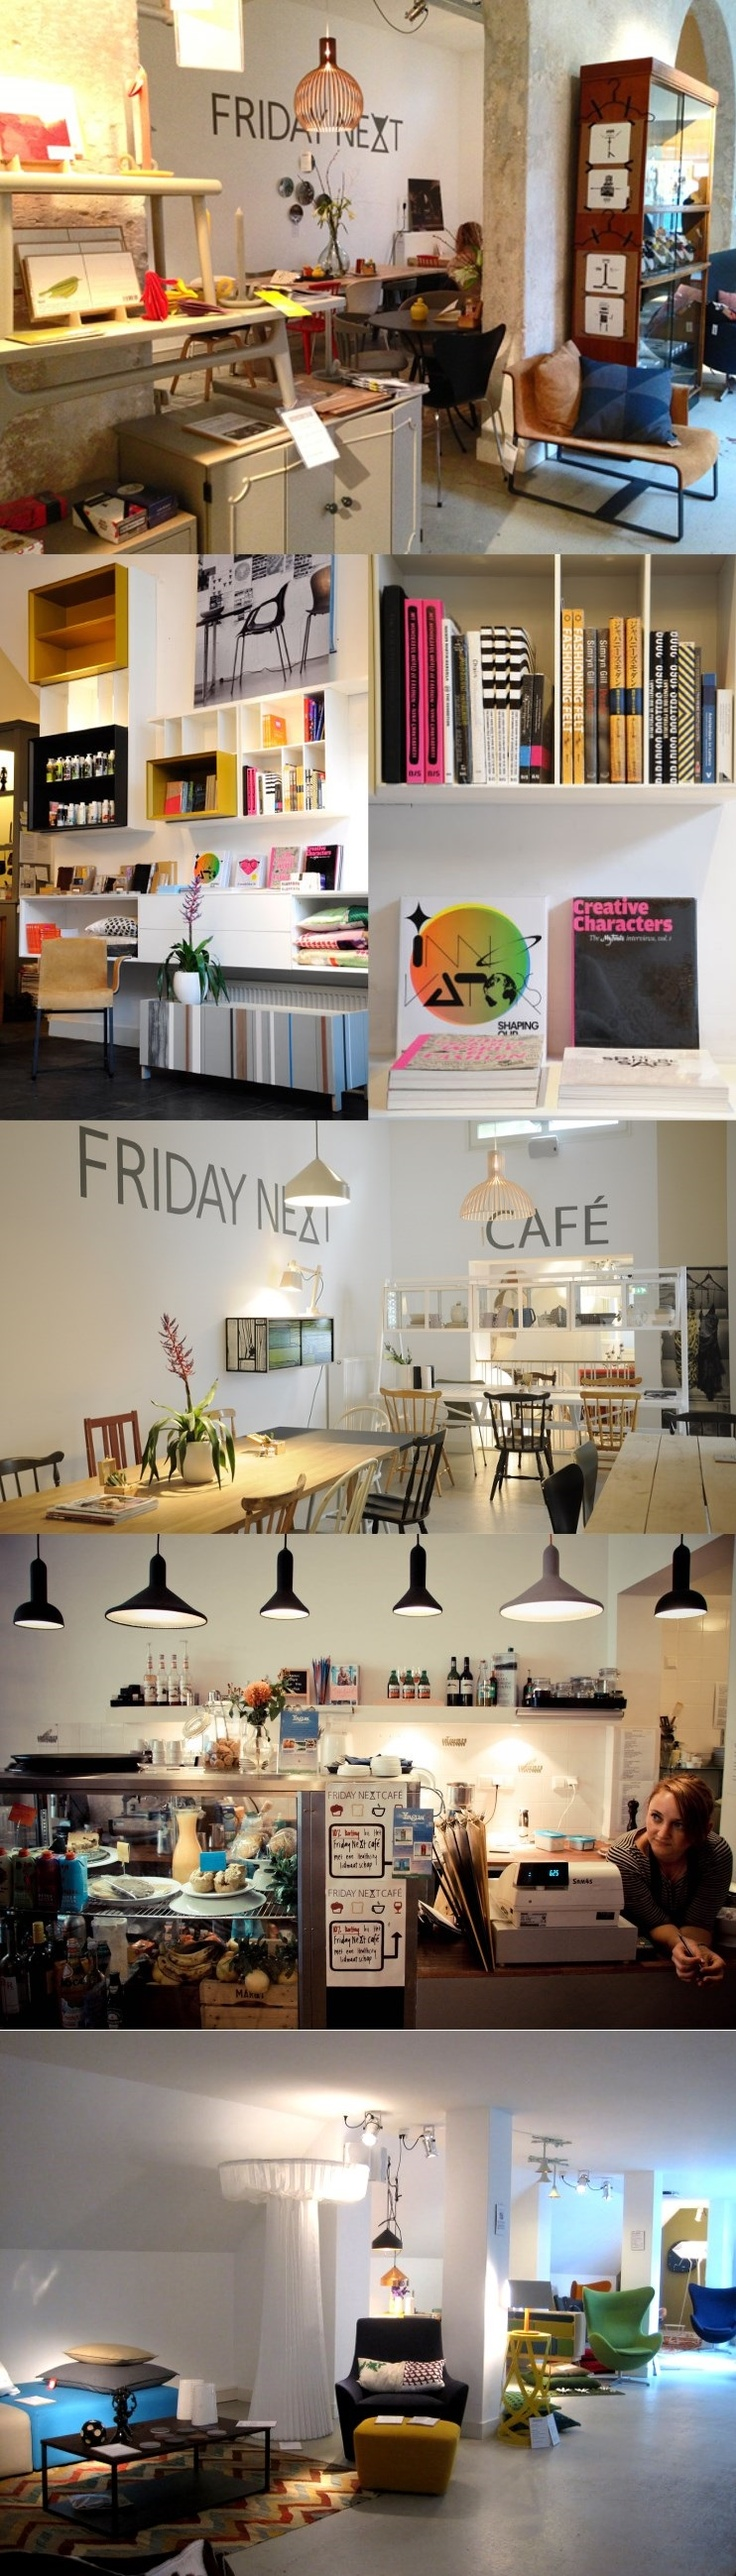 Friday Next, A Concept Store, Cafe, Interior Design Shop And Gallery Space  In